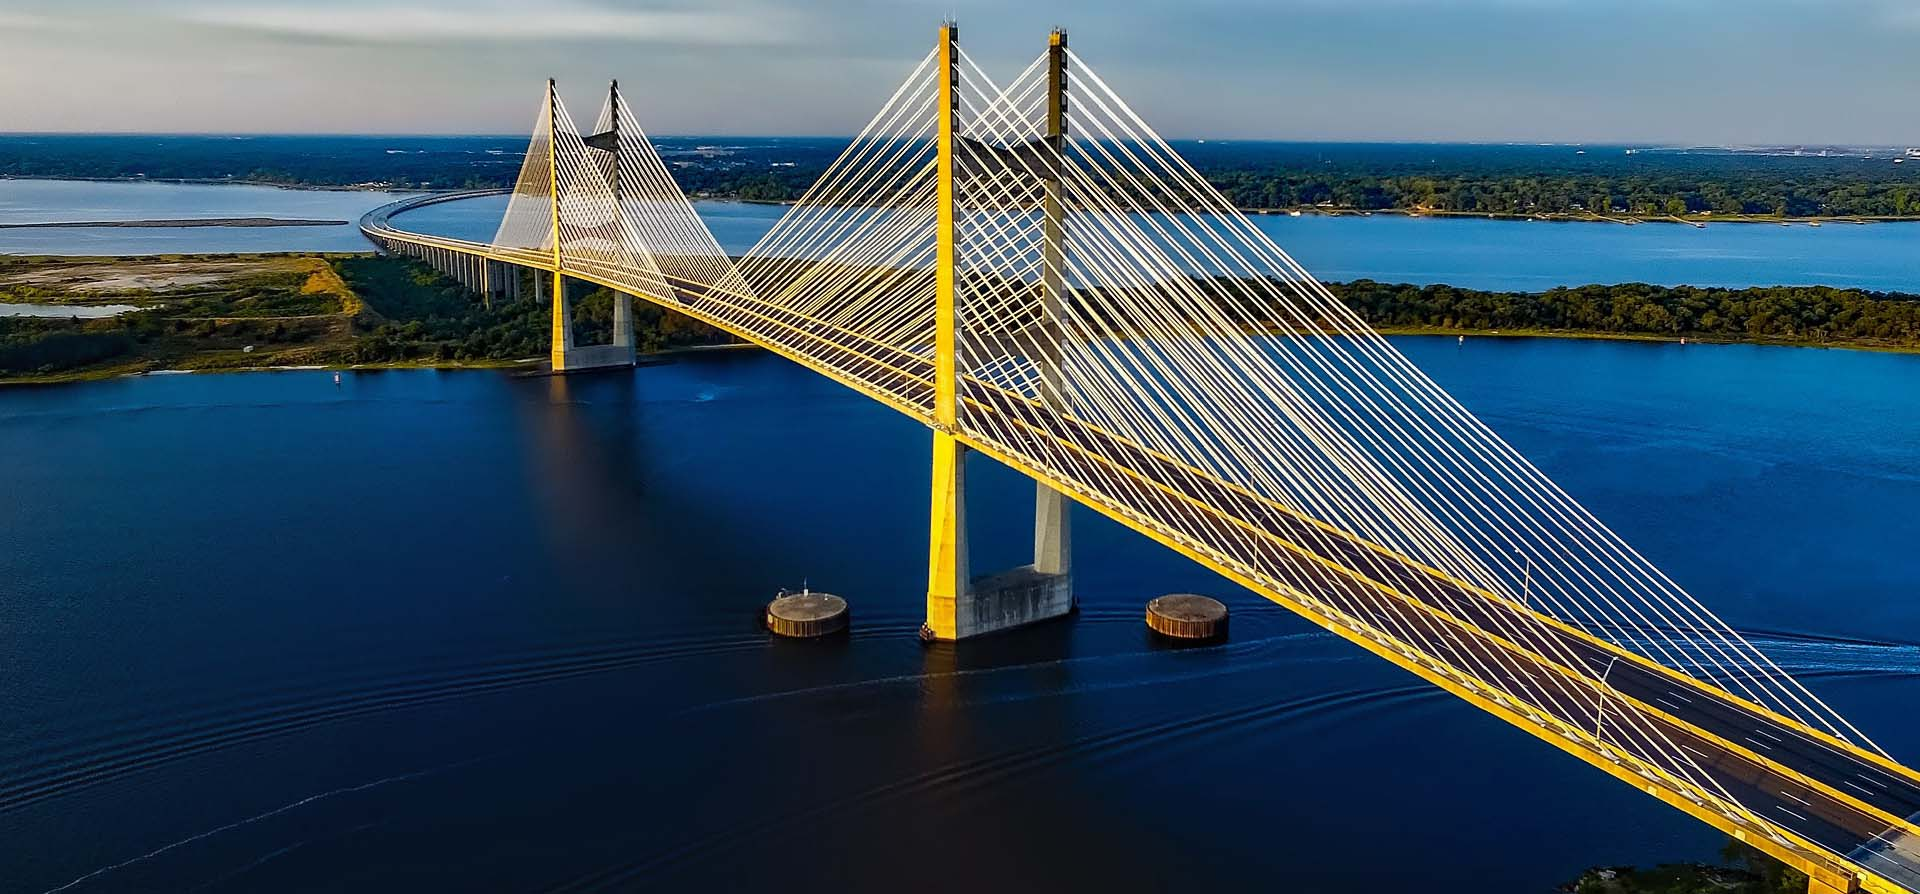 Southern Road and Bridge | Bridge, Marine, & other Structures